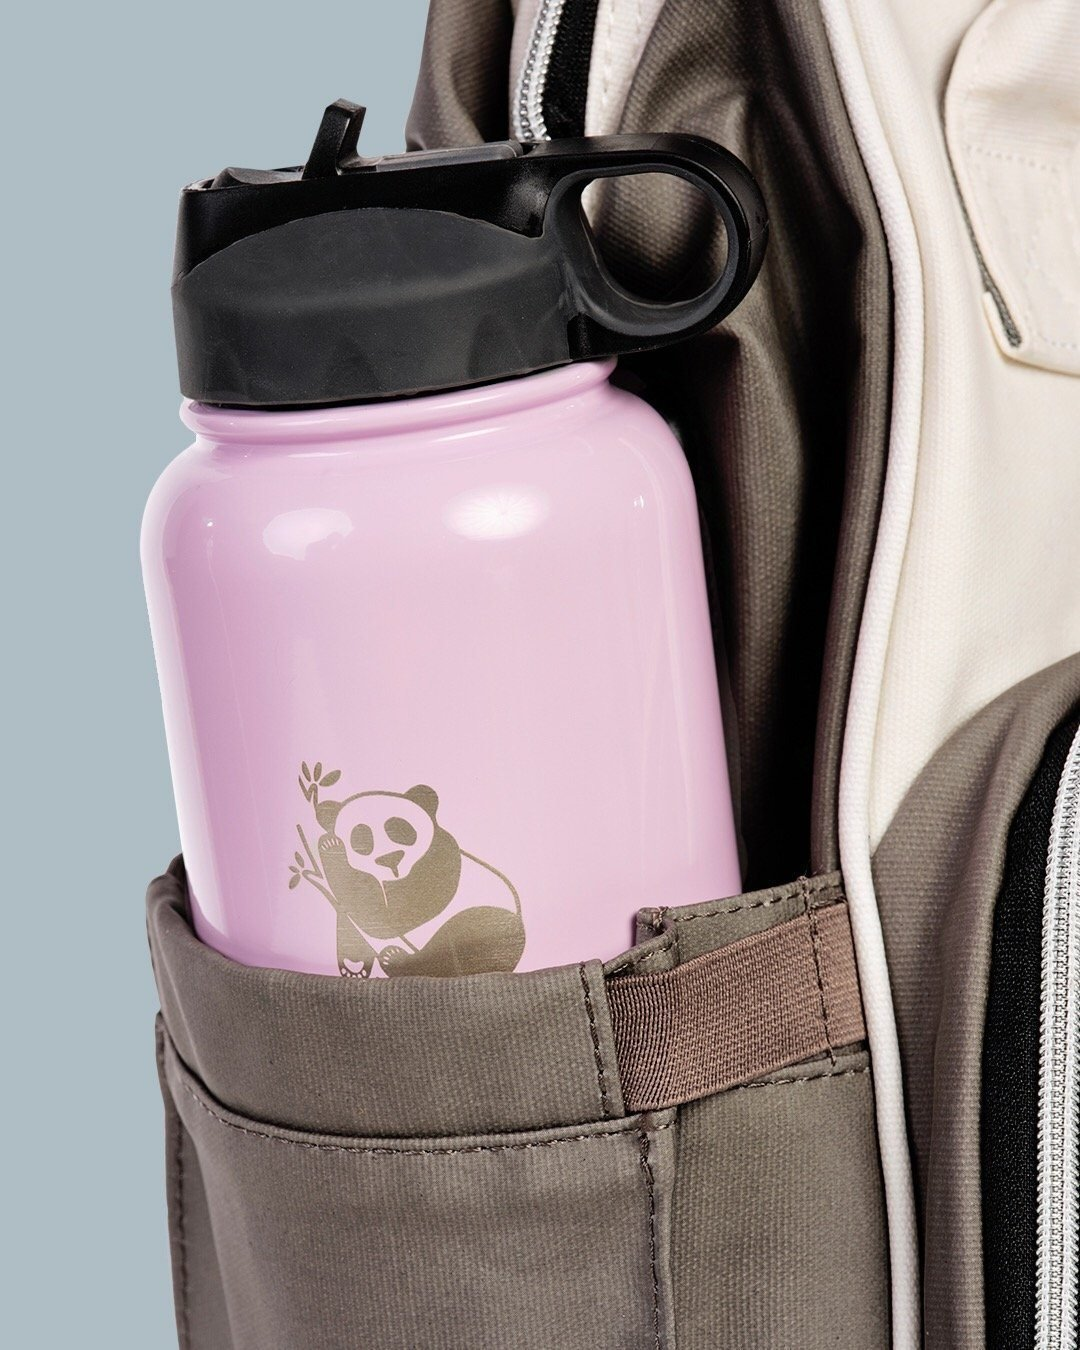 Panda Flask - Sleepy Panda diaper bag backpack stroller straps changing pad